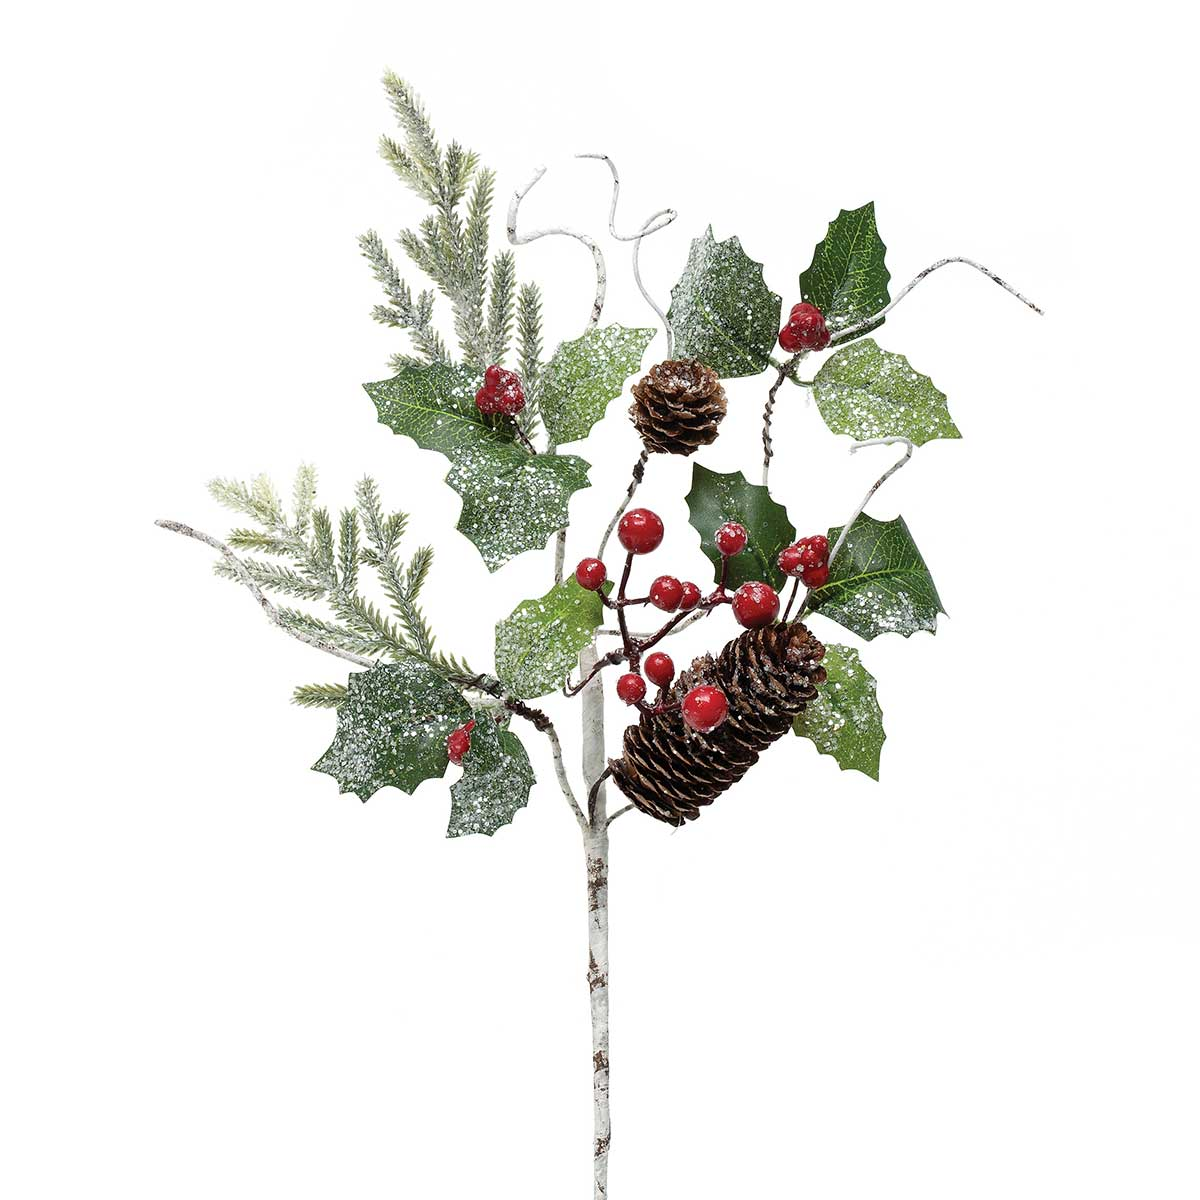 BIRCH & PINE PIK WITH HOLLY,